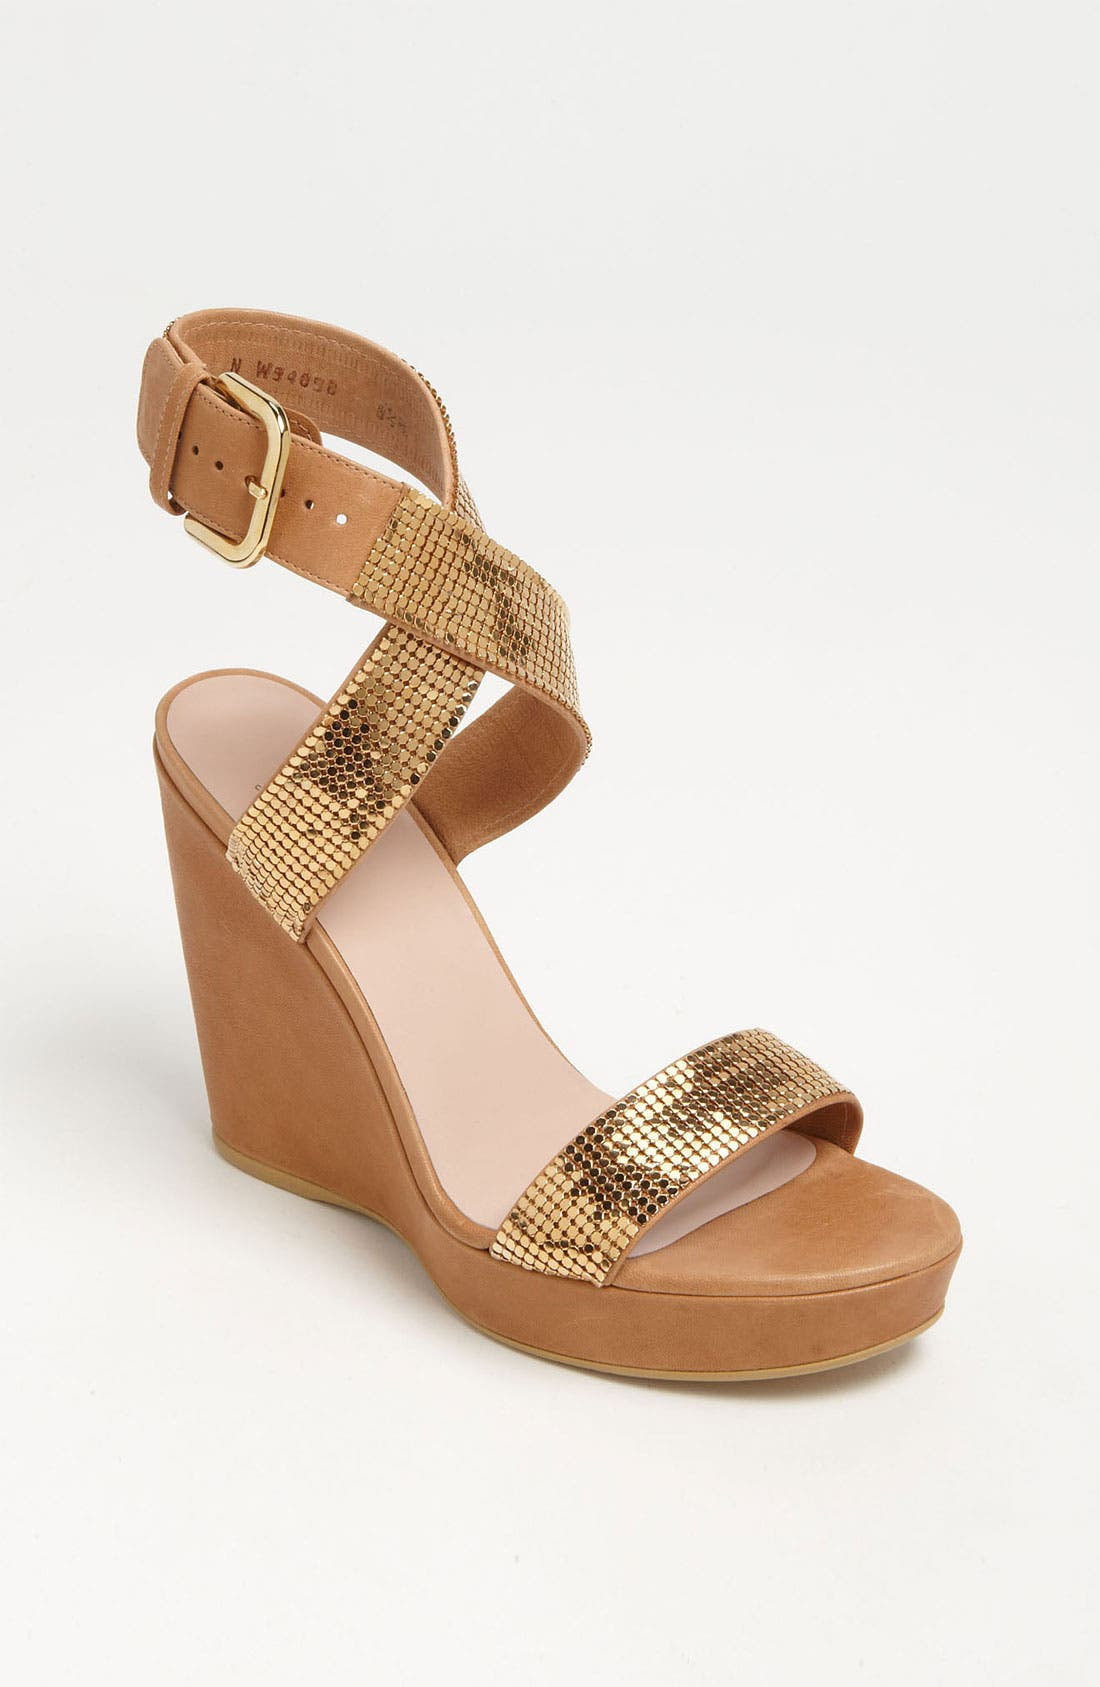 Alternate Image 1 Selected - Stuart Weitzman 'Metalmania' Wedge Sandal